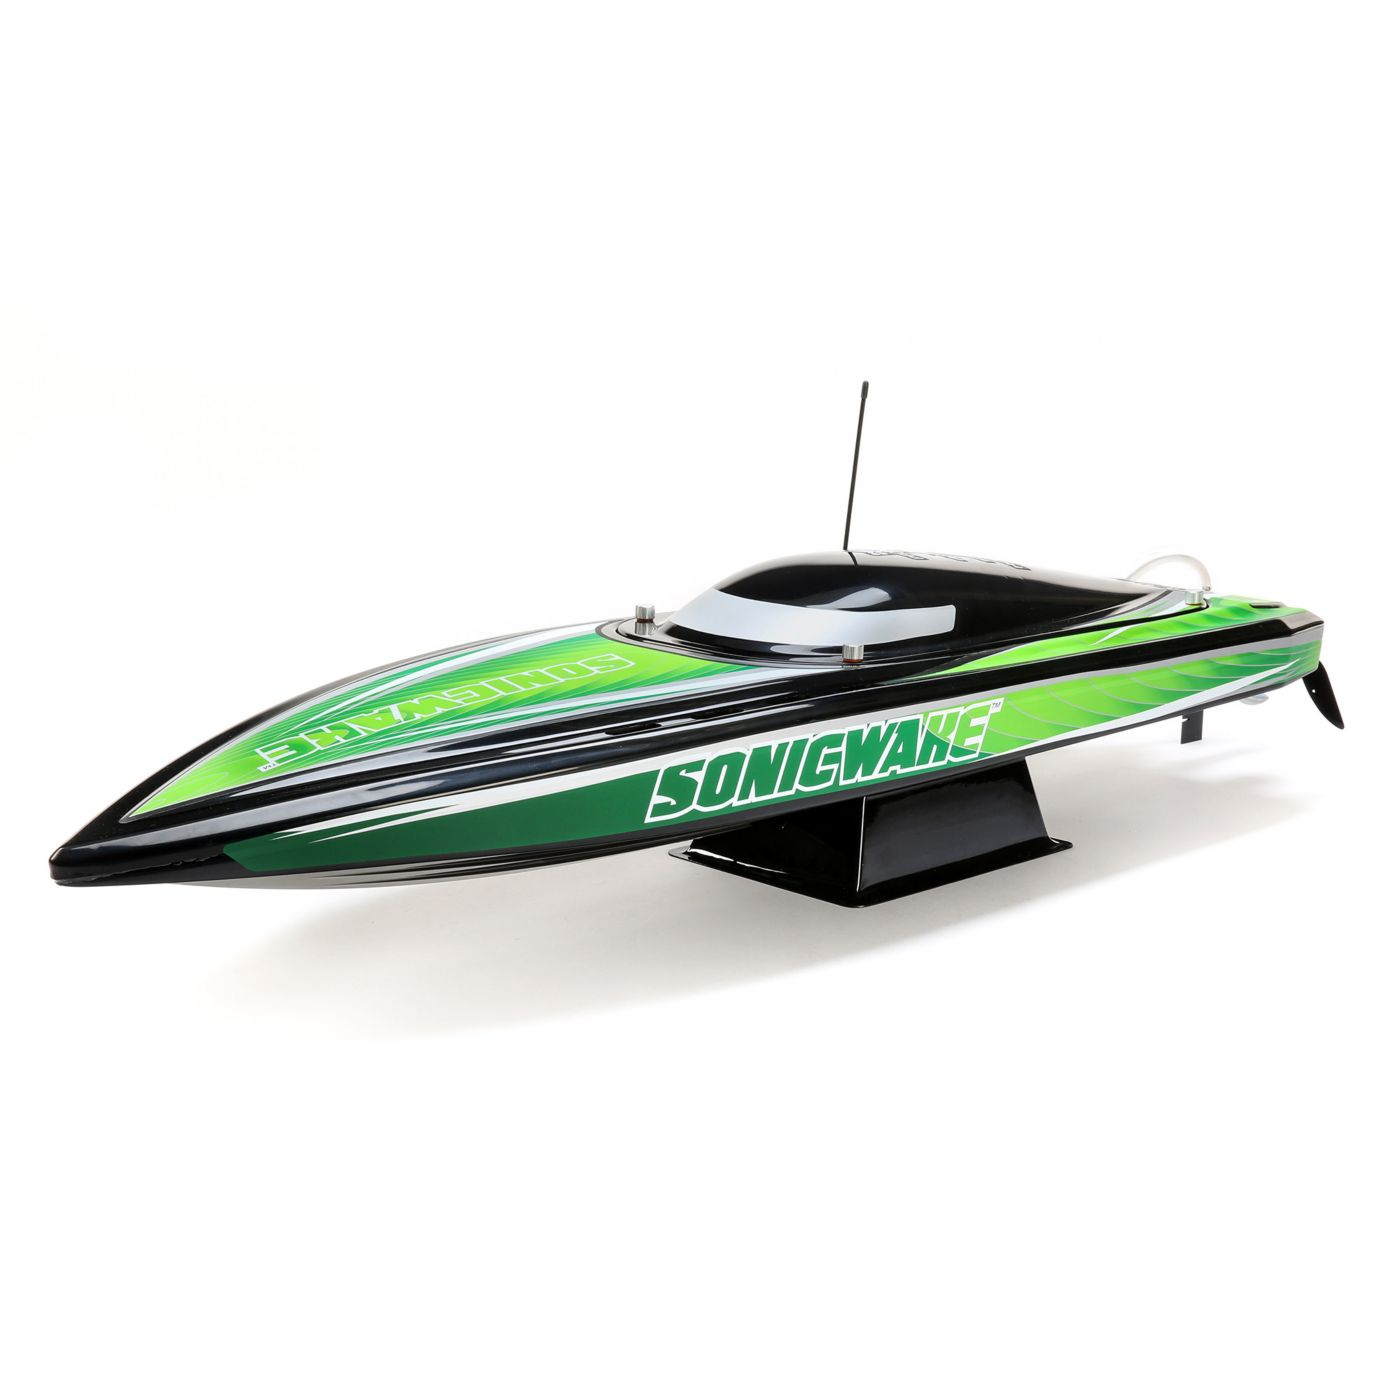 Proboat Sonicwake 36 Deep-V Self-Righting Brushless Boat RTR 1